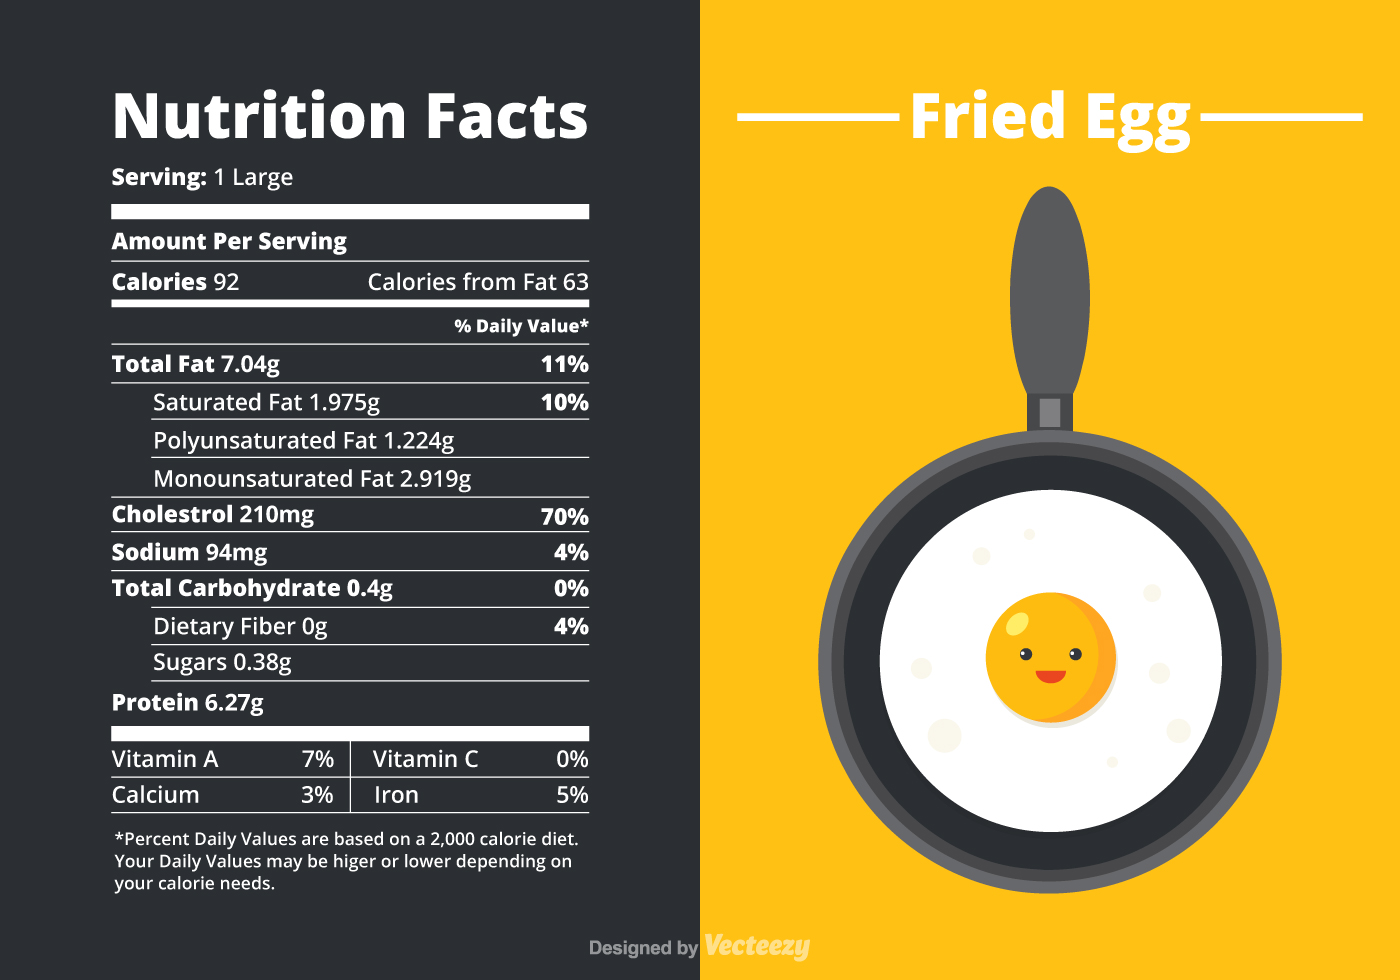 Vector Nutrition Facts Of A Fried Egg - Download Free Vector Art, Stock  Graphics & Images